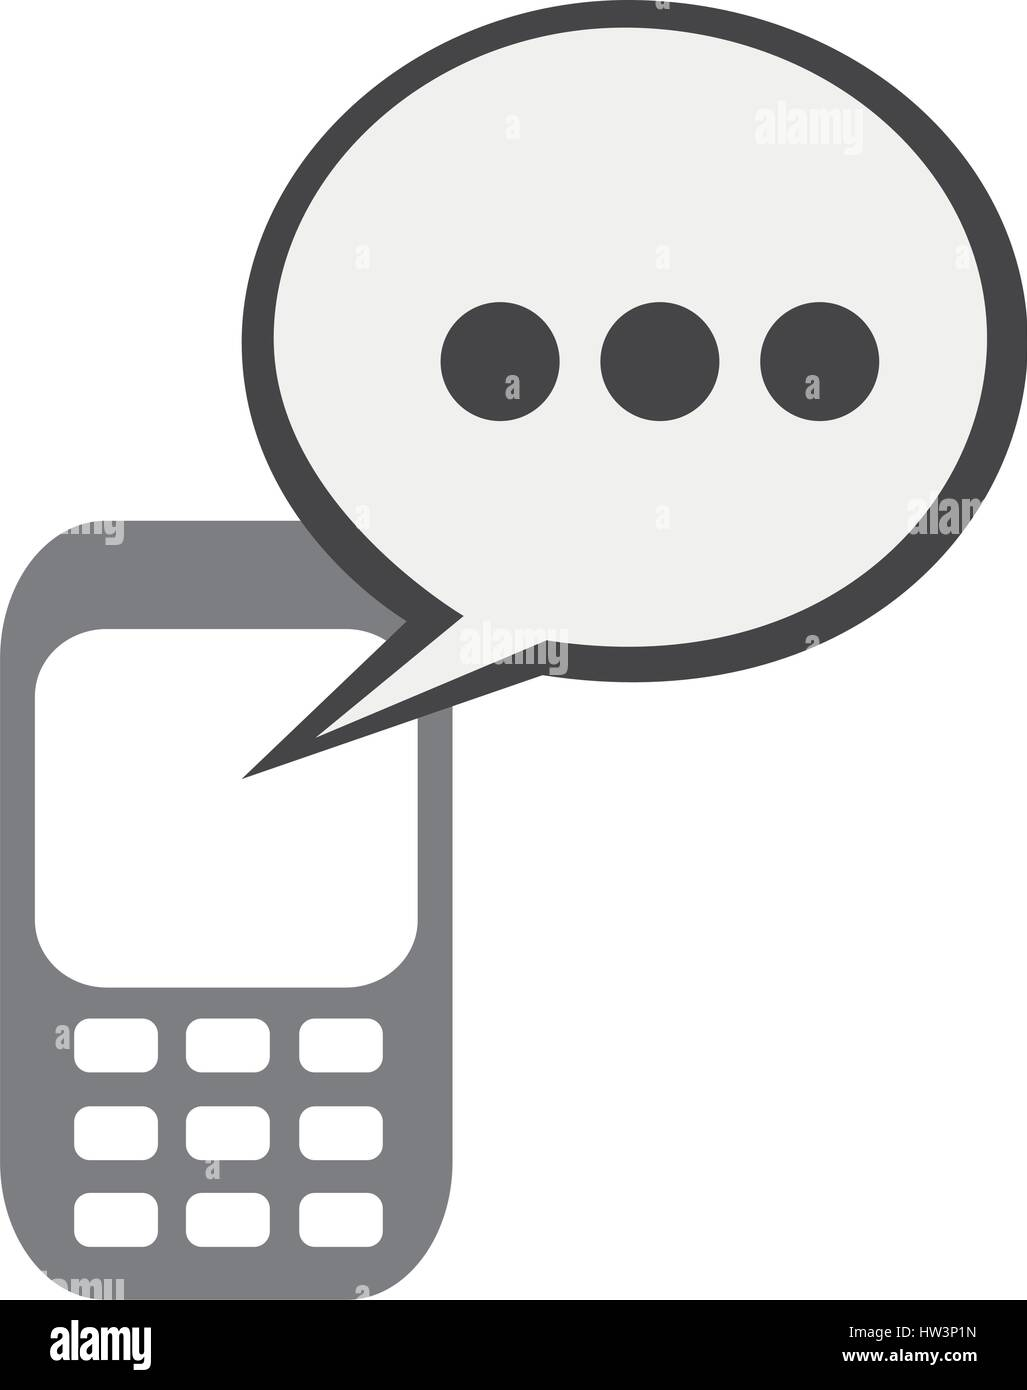 silhouette tech cellphone and dialog box icon flat - Stock Image